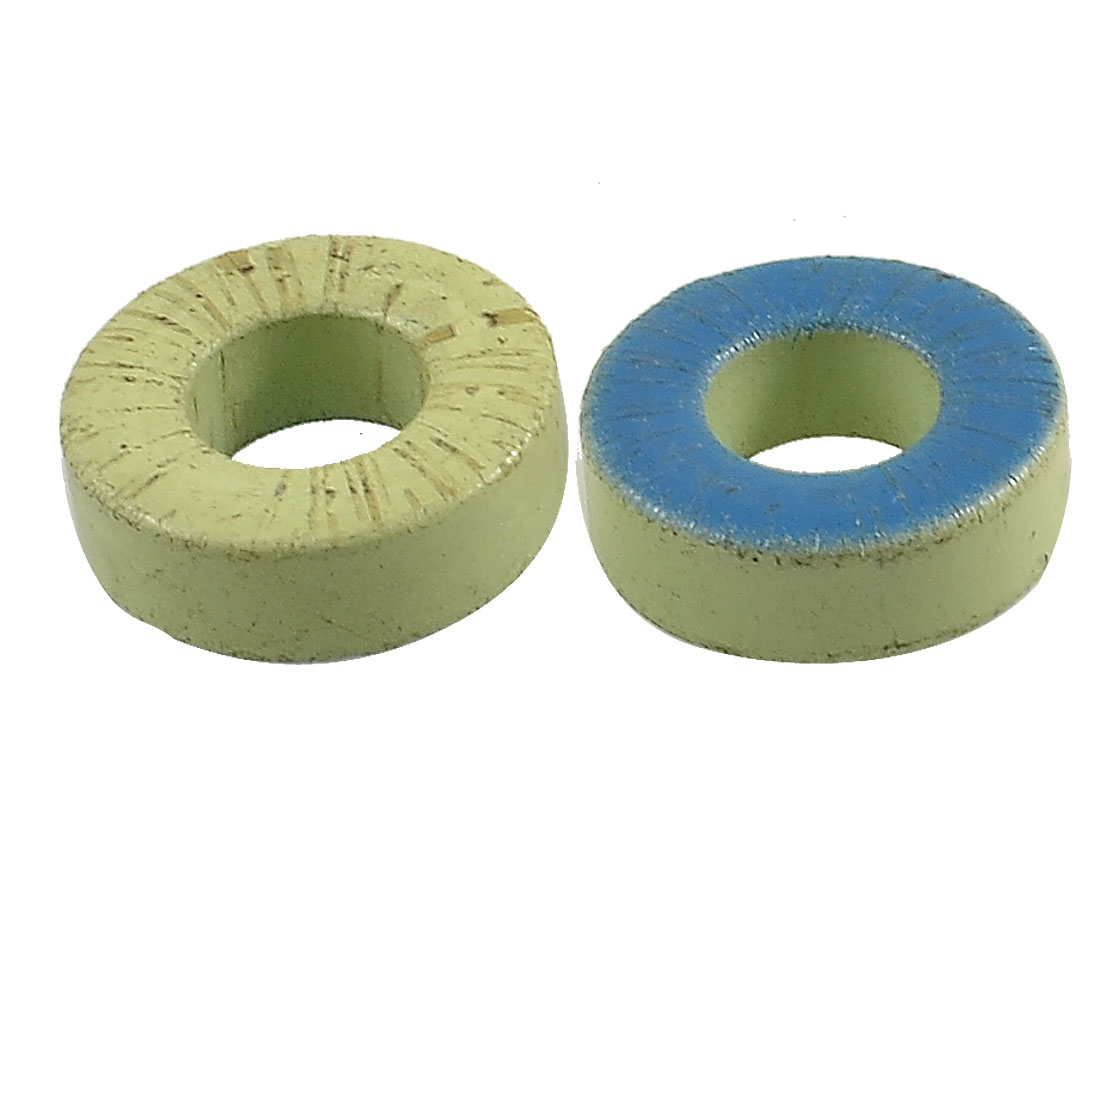 "2 Pcs Power Iron Transformers Ferrite Toroid Cores Green Blue 1.3"" x 0.77"" x 0.45"""